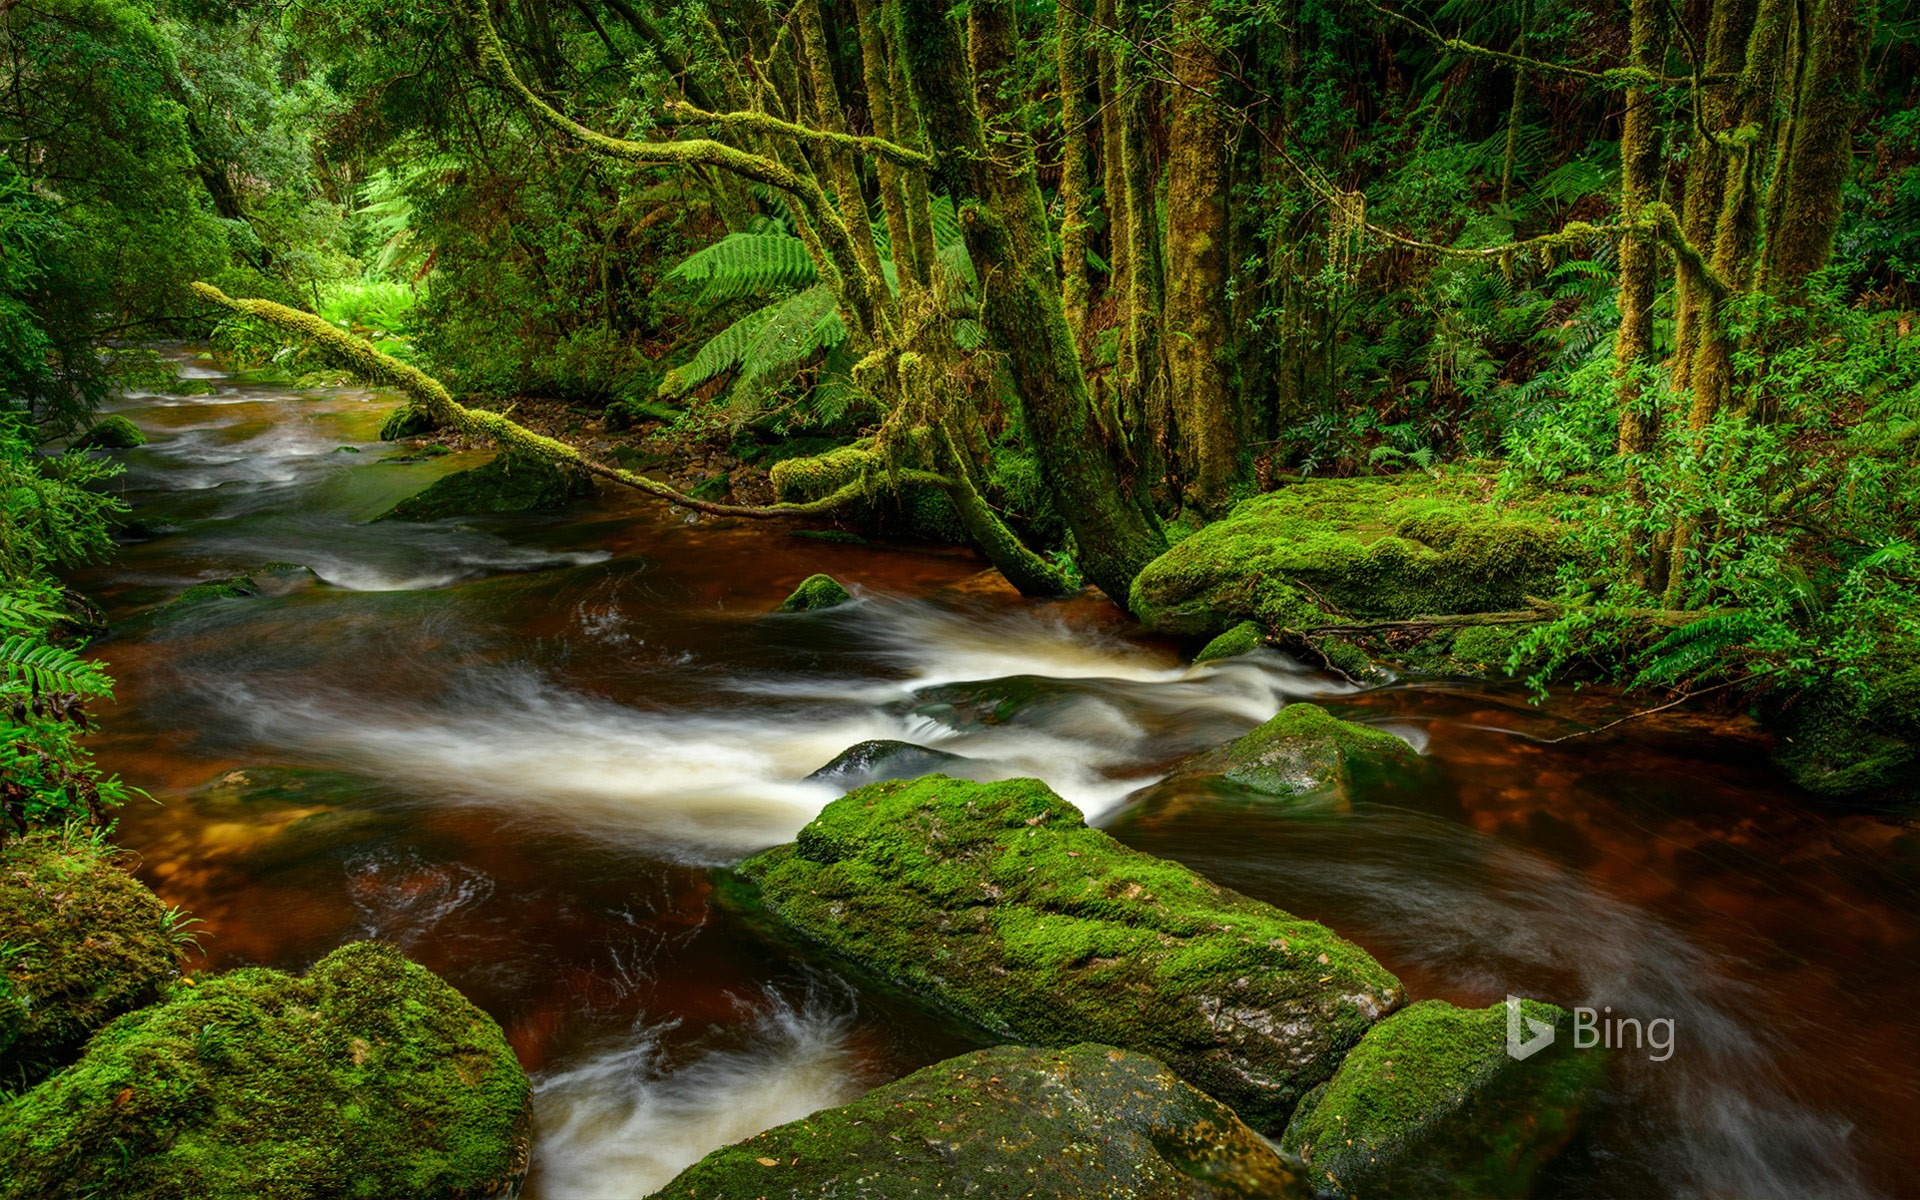 Franklin-Gordon Wild Rivers National Park, Tasmania